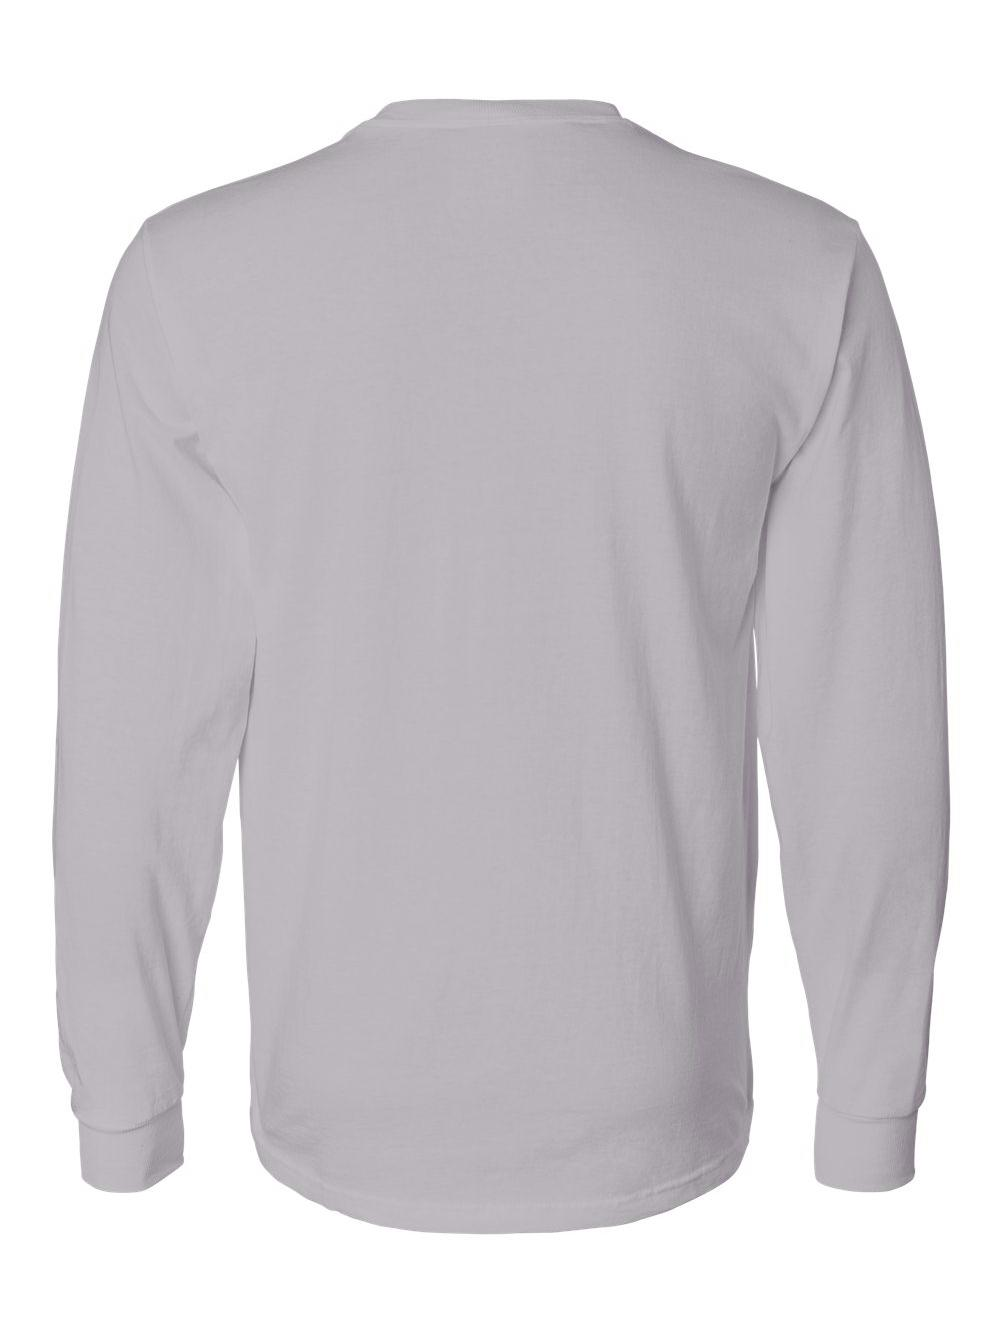 Fruit-of-the-Loom-HD-Cotton-Long-Sleeve-T-Shirt-4930R thumbnail 73